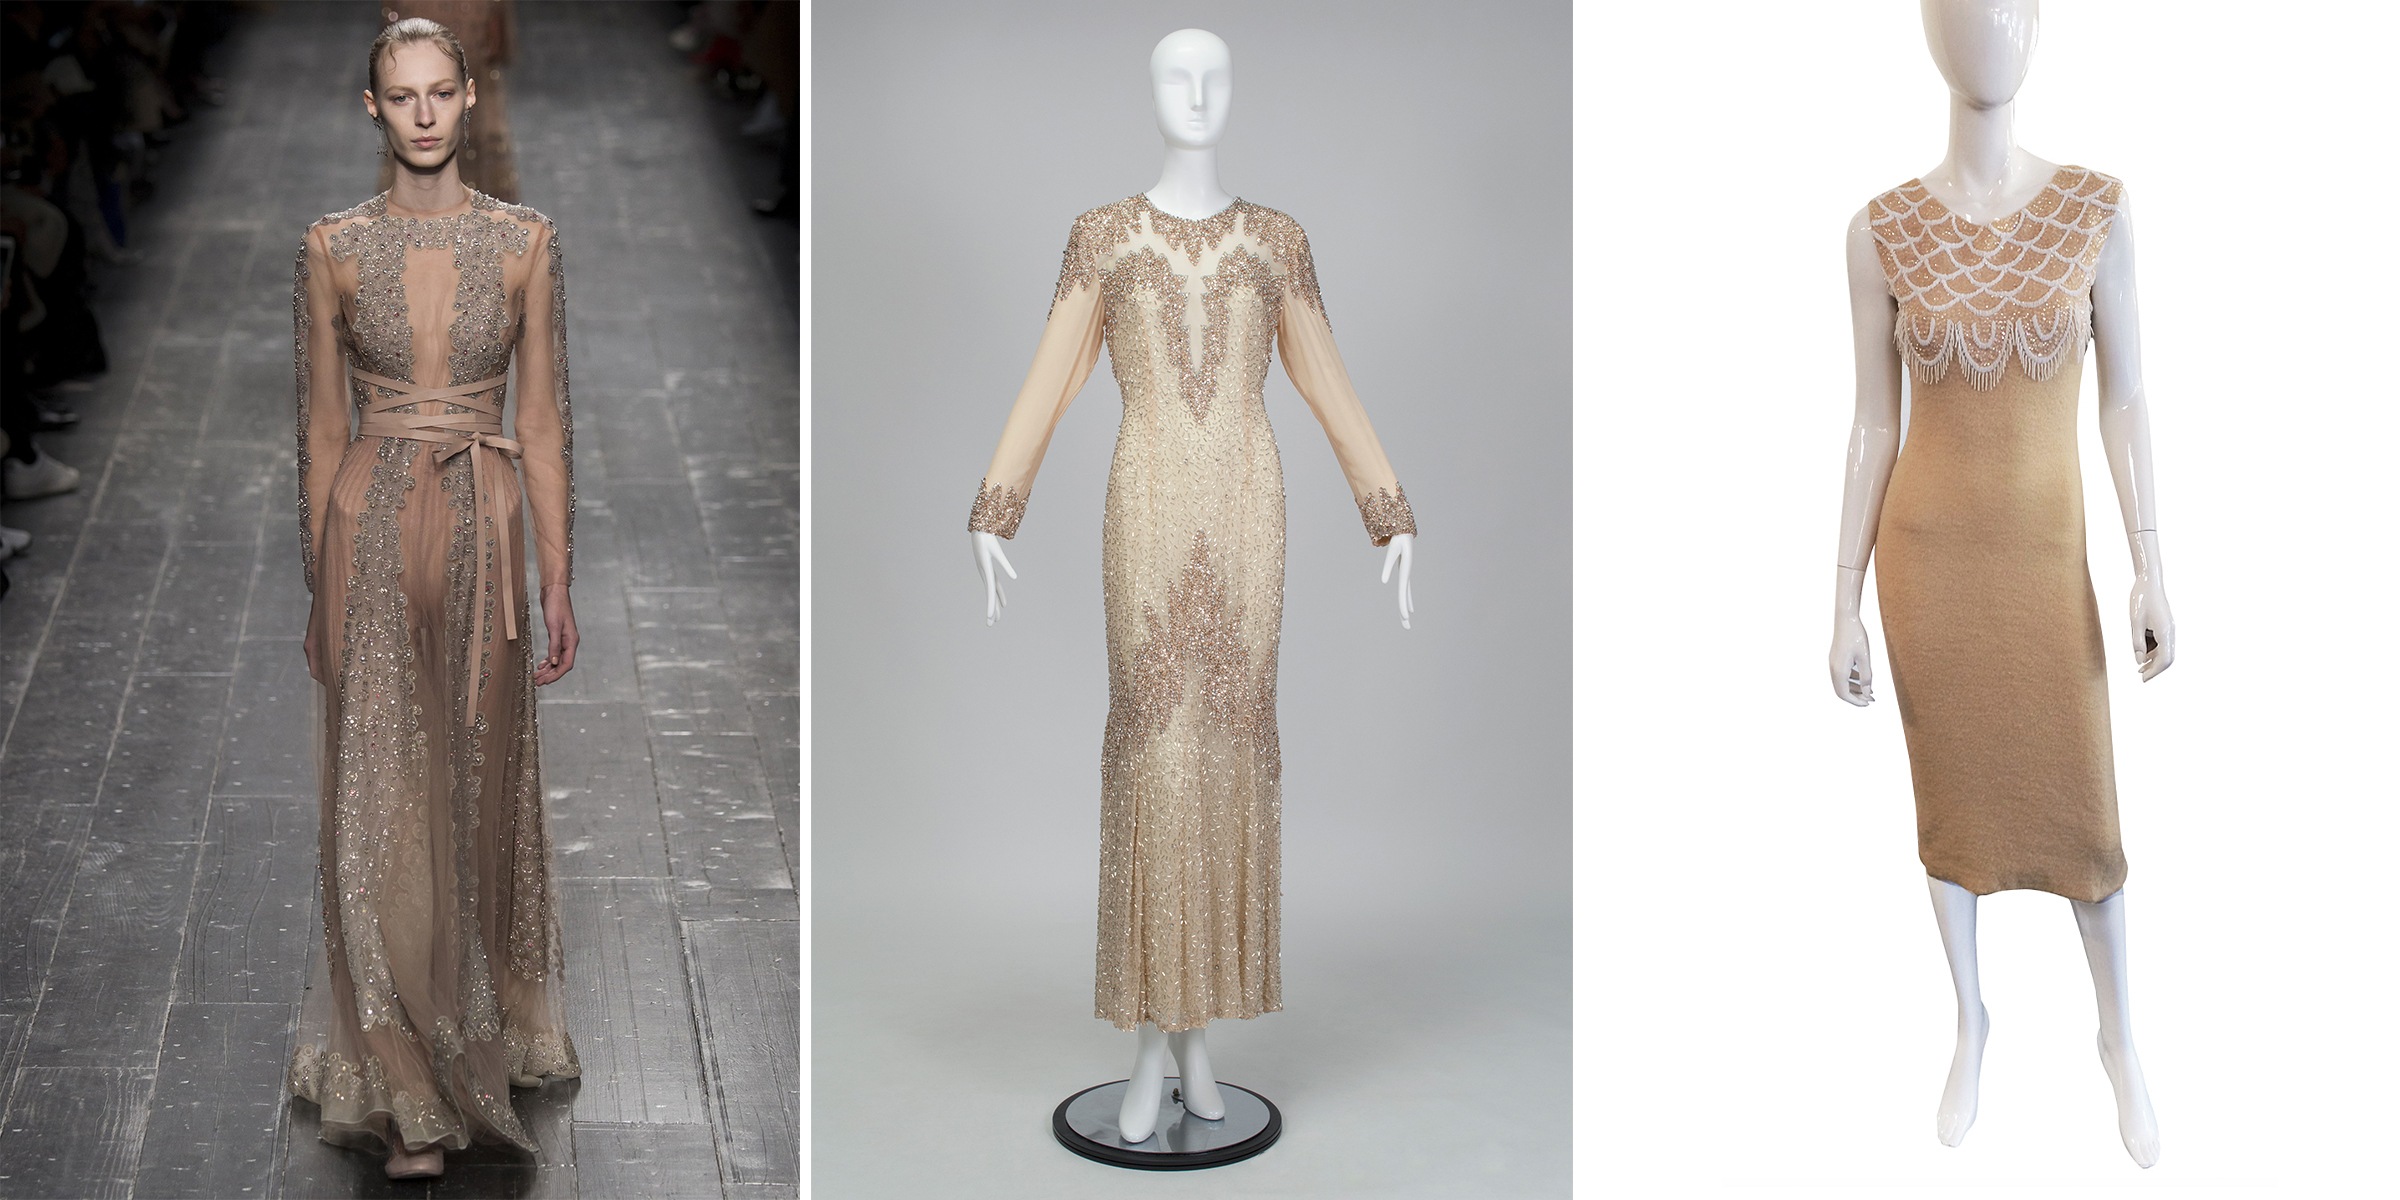 A Valentino Haute Couture gown (A/W 2016) compared with a similar vintage gown at Black Cat Vintage.